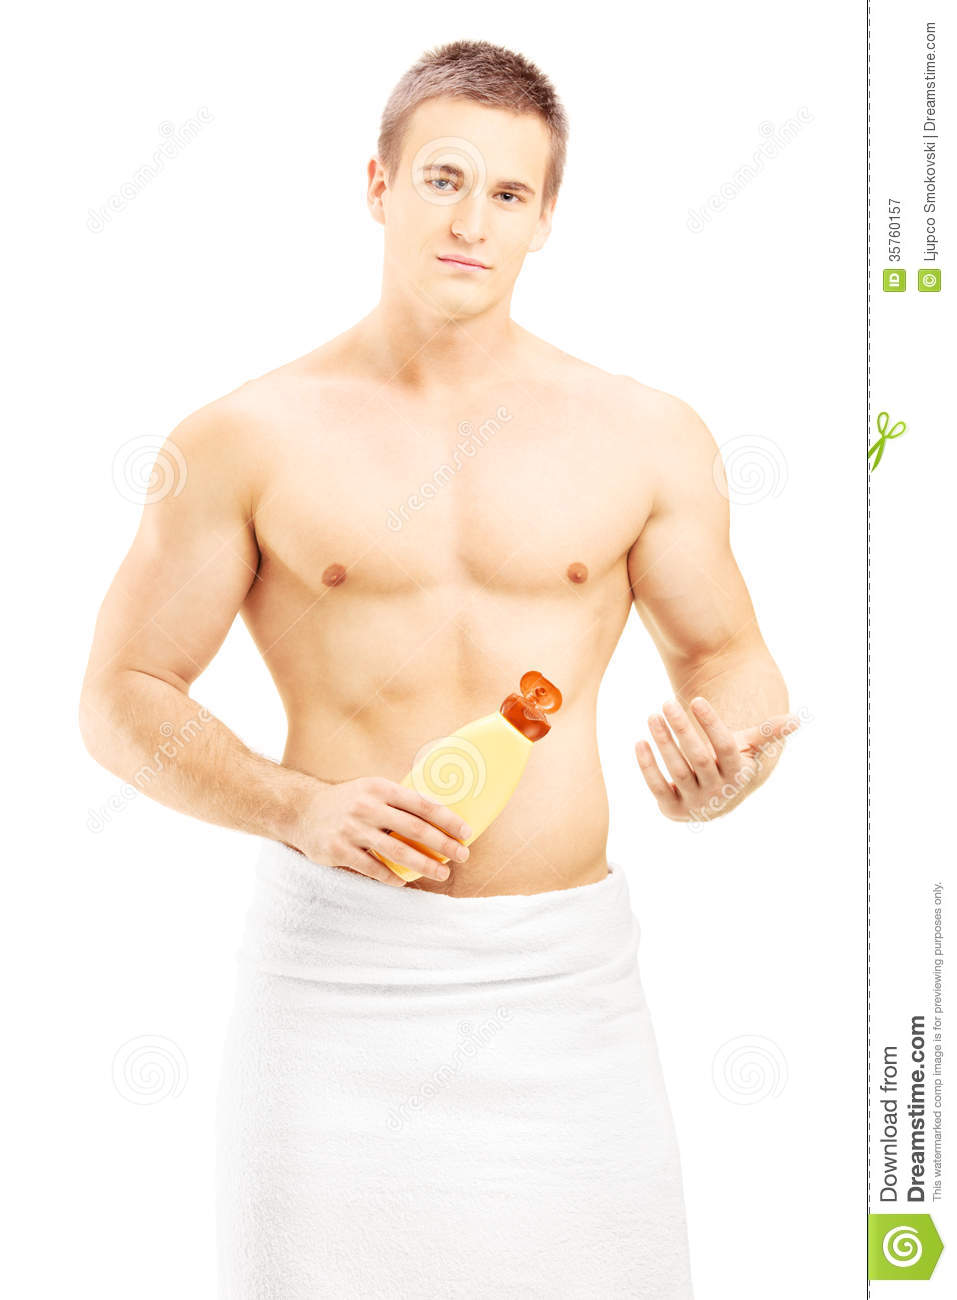 putting lotion on after triamcinolone